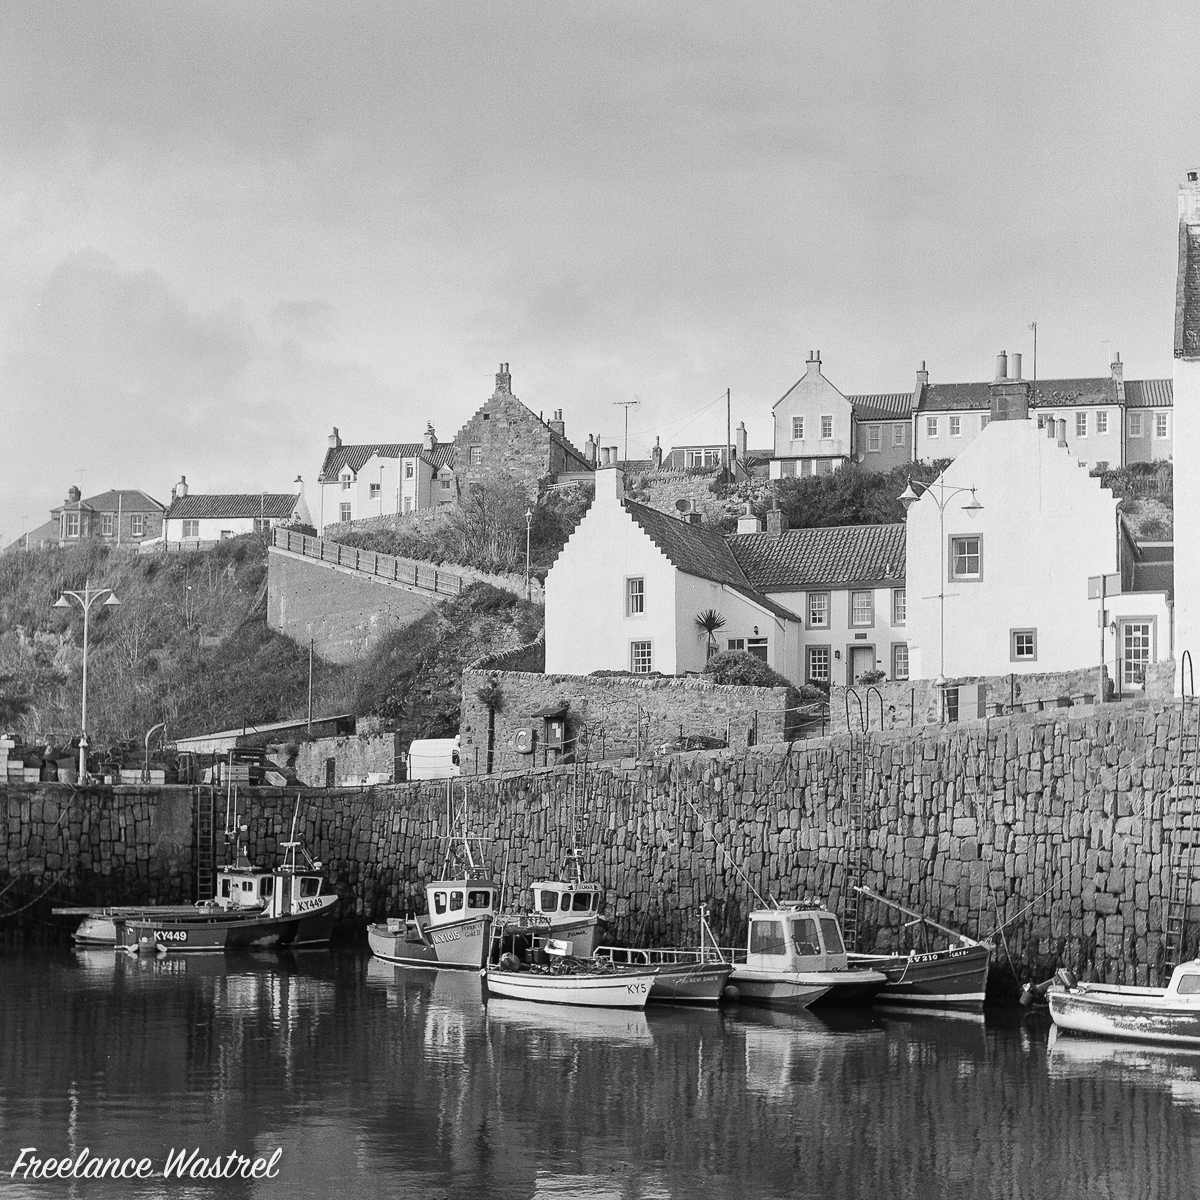 Crail, October 2018